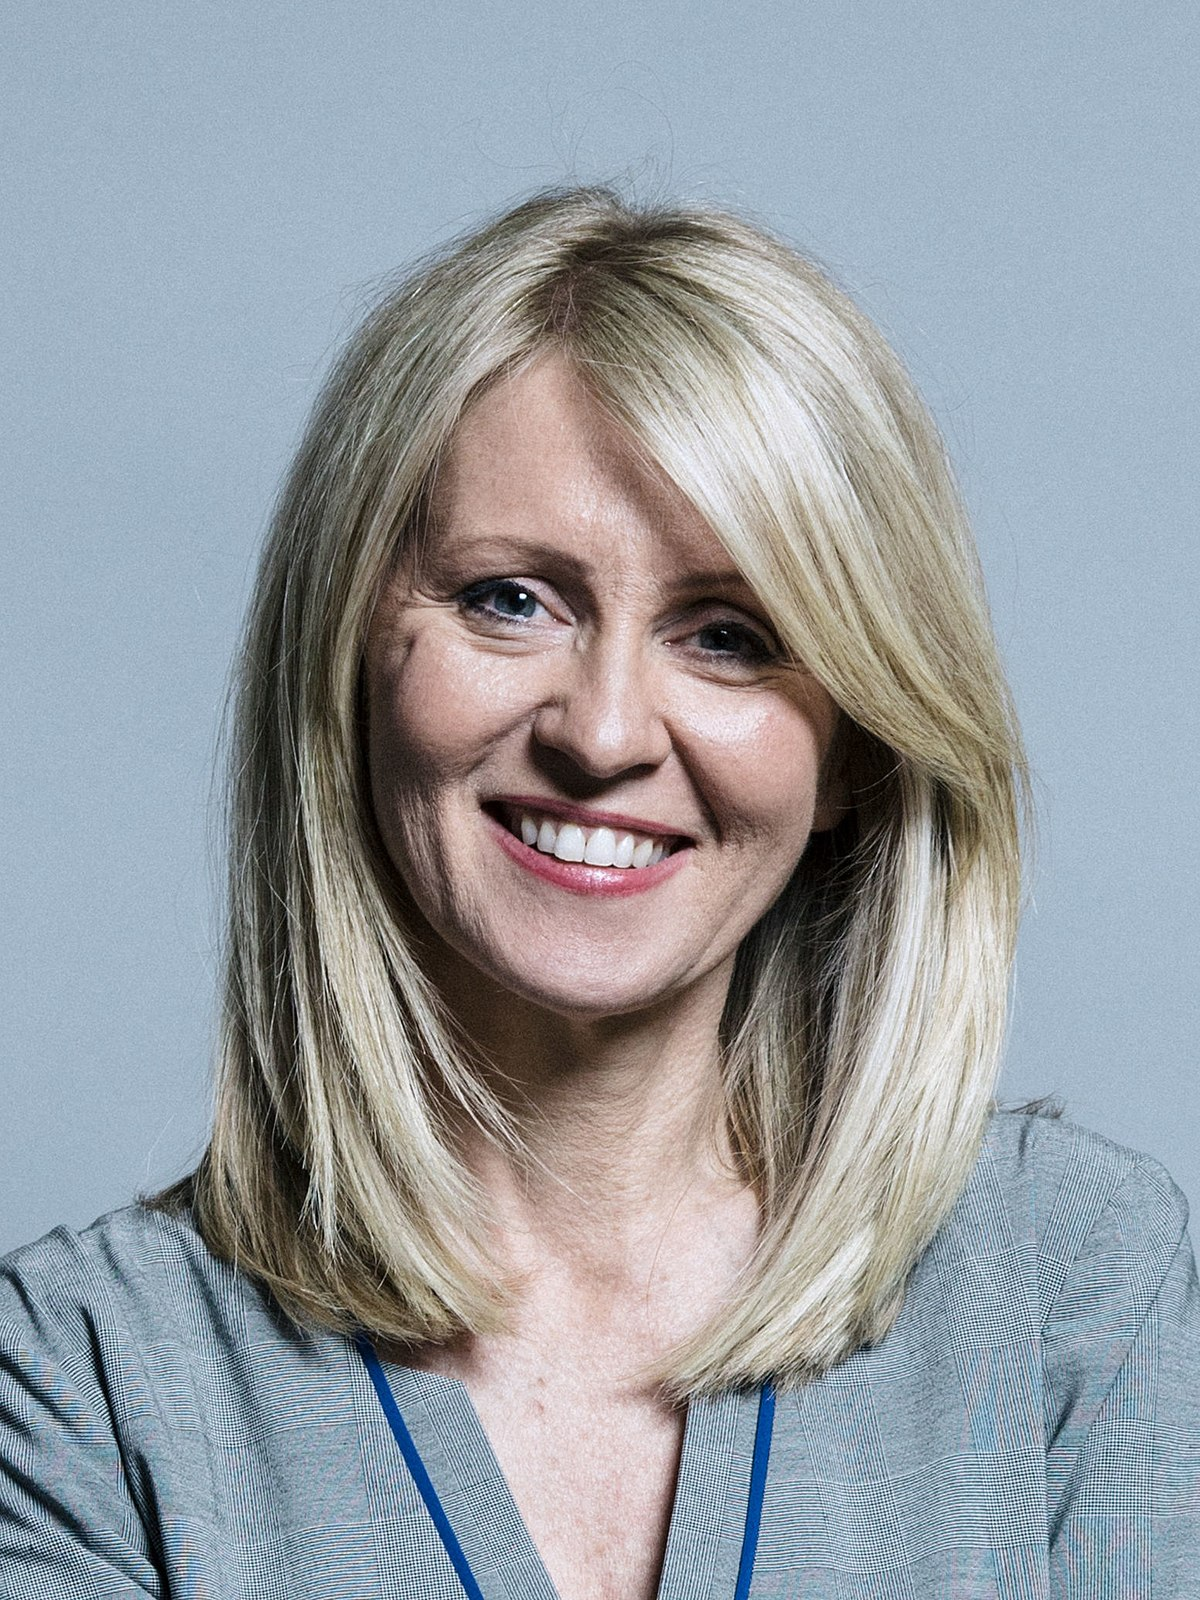 esther mcvey - photo #1